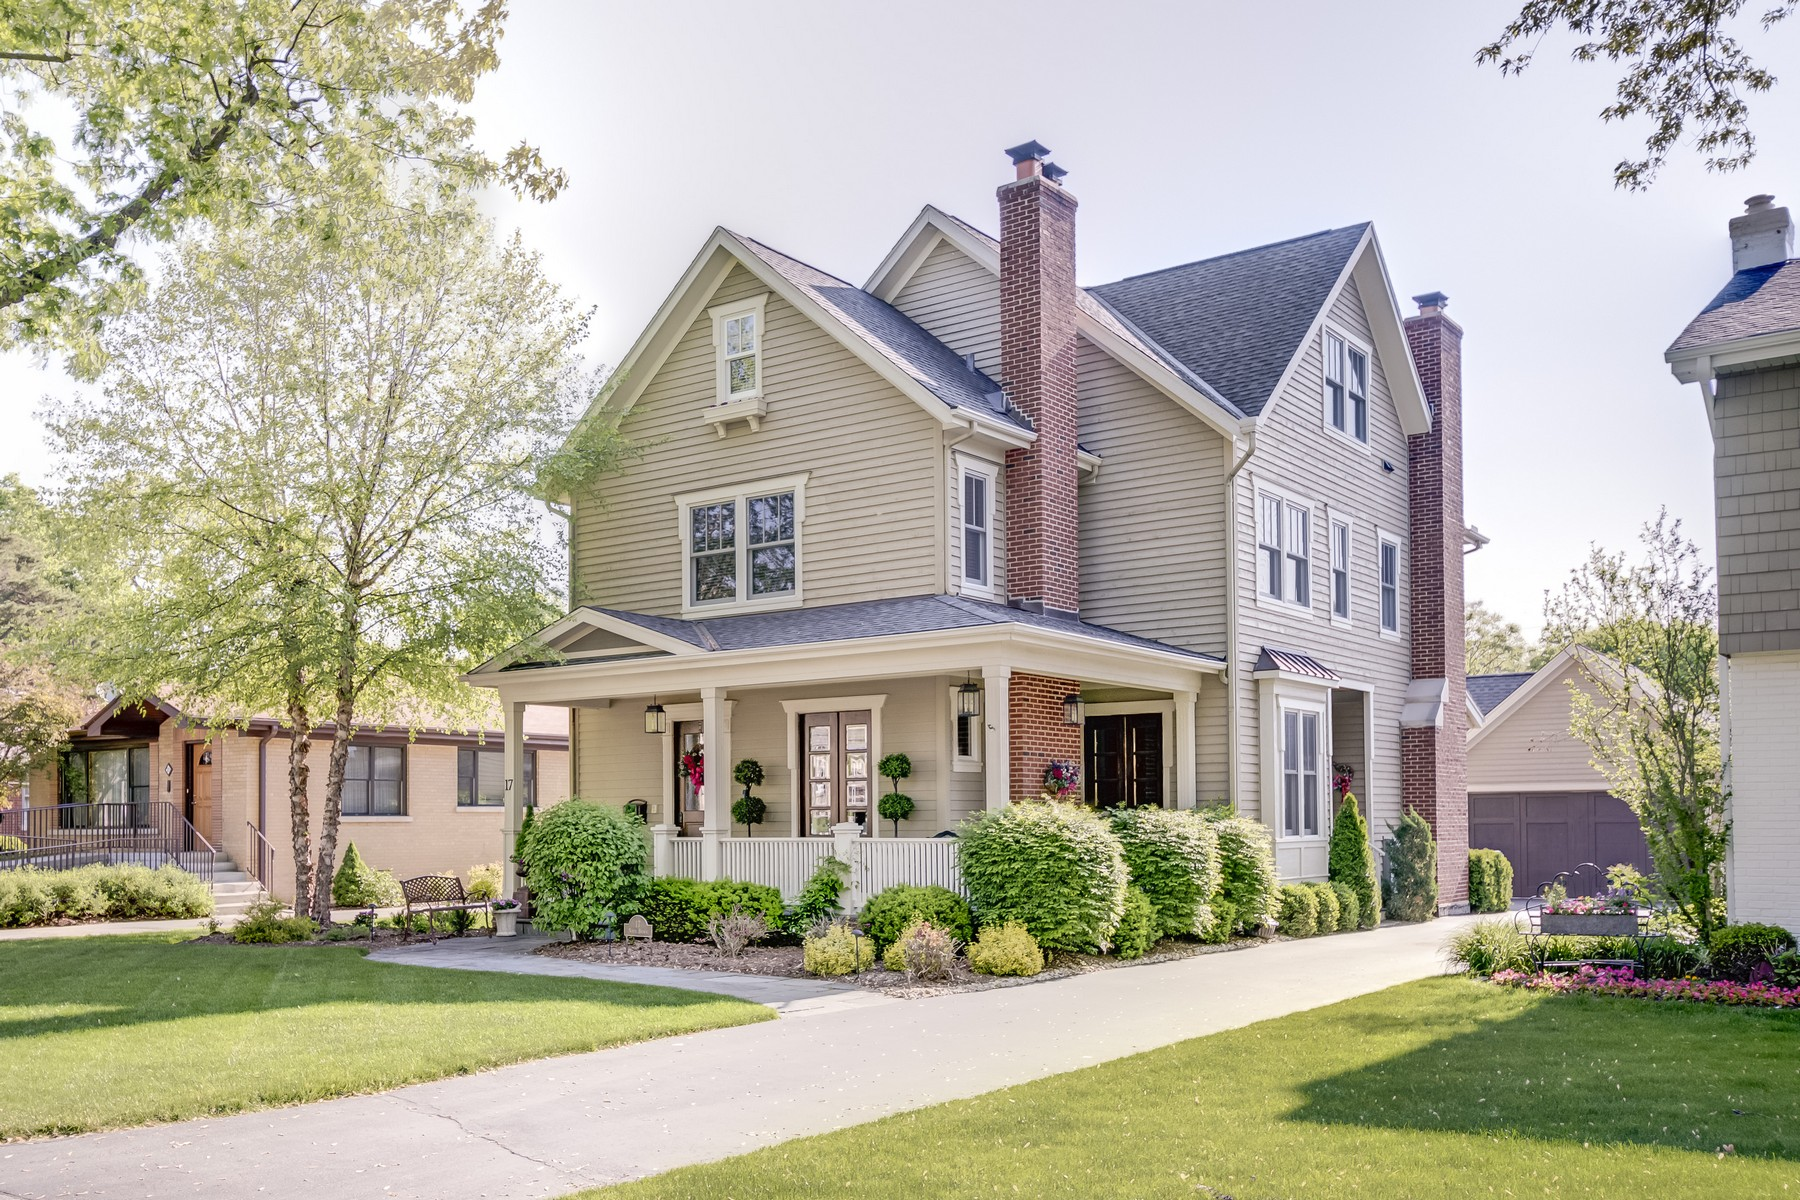 Single Family Home for Sale at Charming Hinsdale Home 17 N Bruner Street Hinsdale, Illinois, 60521 United States